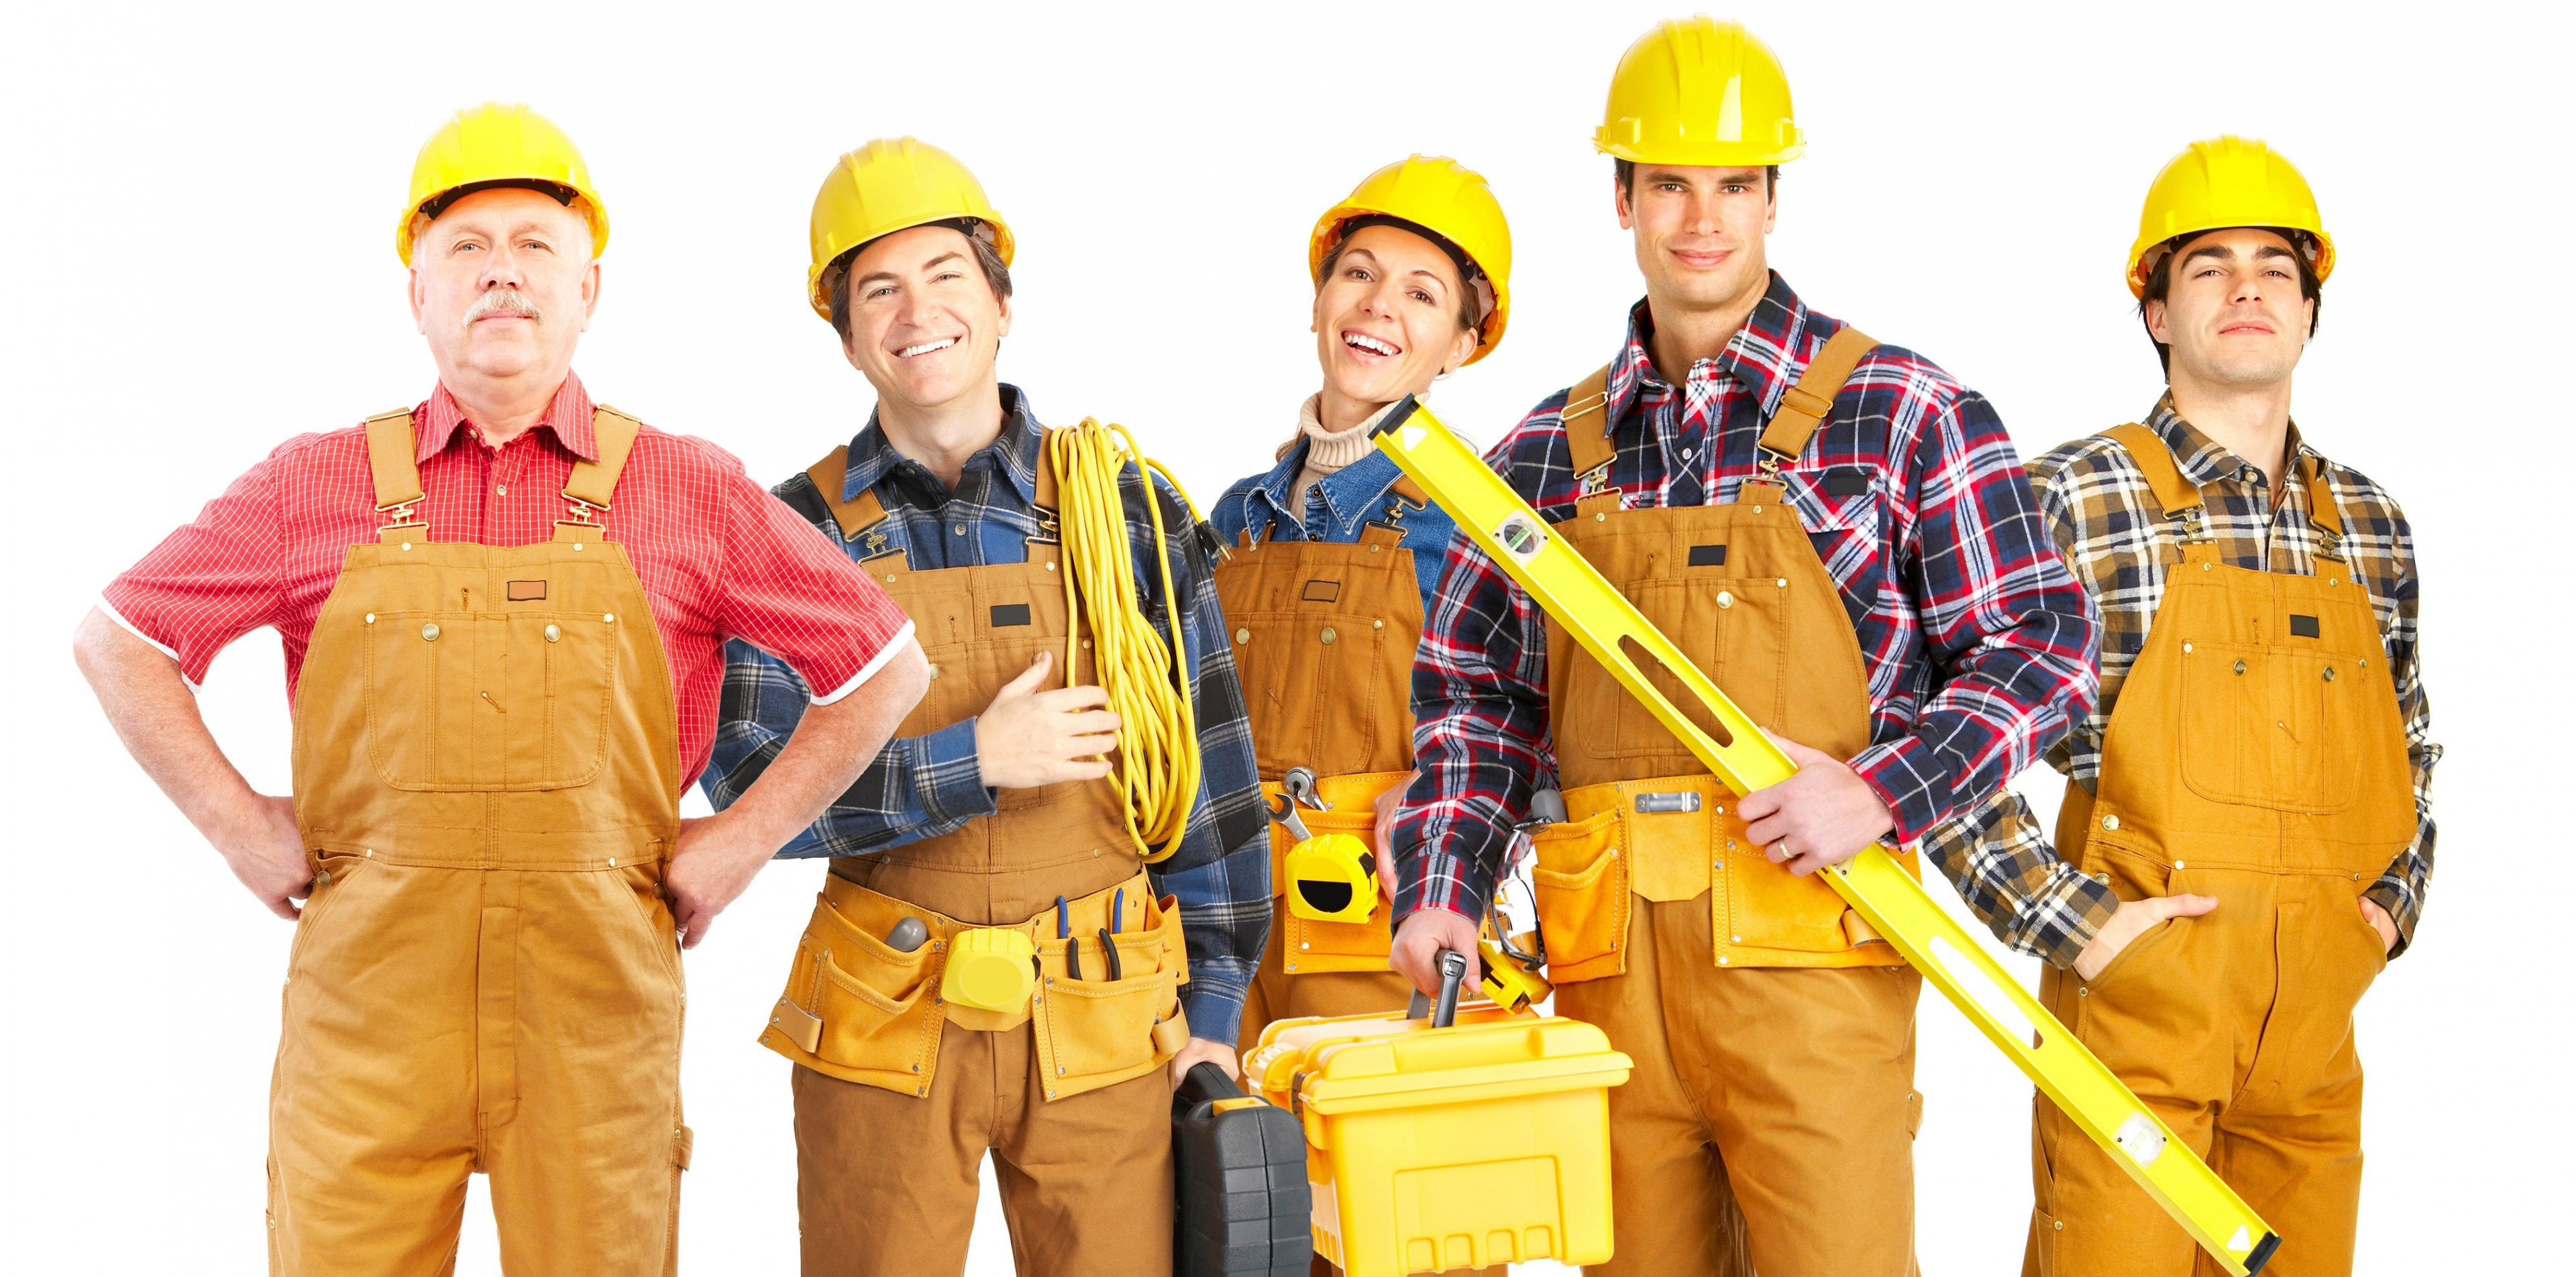 builders_tools_helmets_white_background_80719_3840x24001